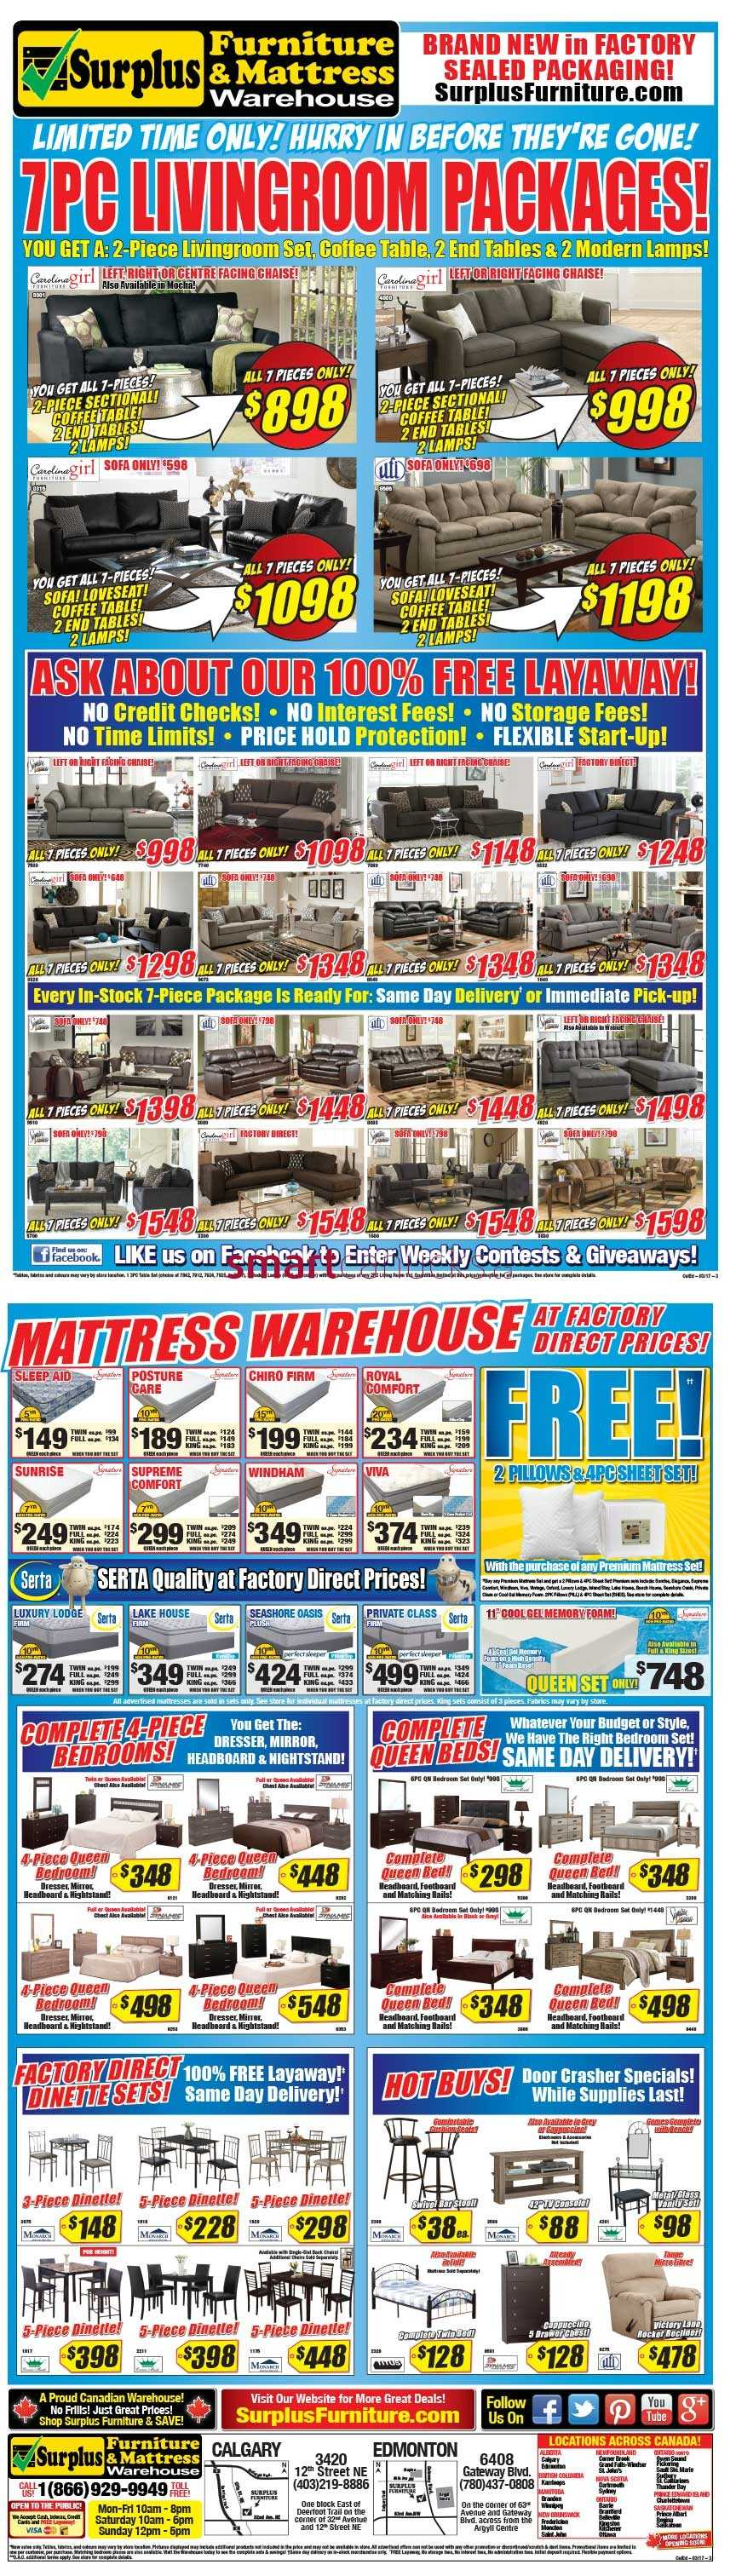 Surplus furniture mattress warehouse edmonton flyer for Surplus furniture and mattress edmonton